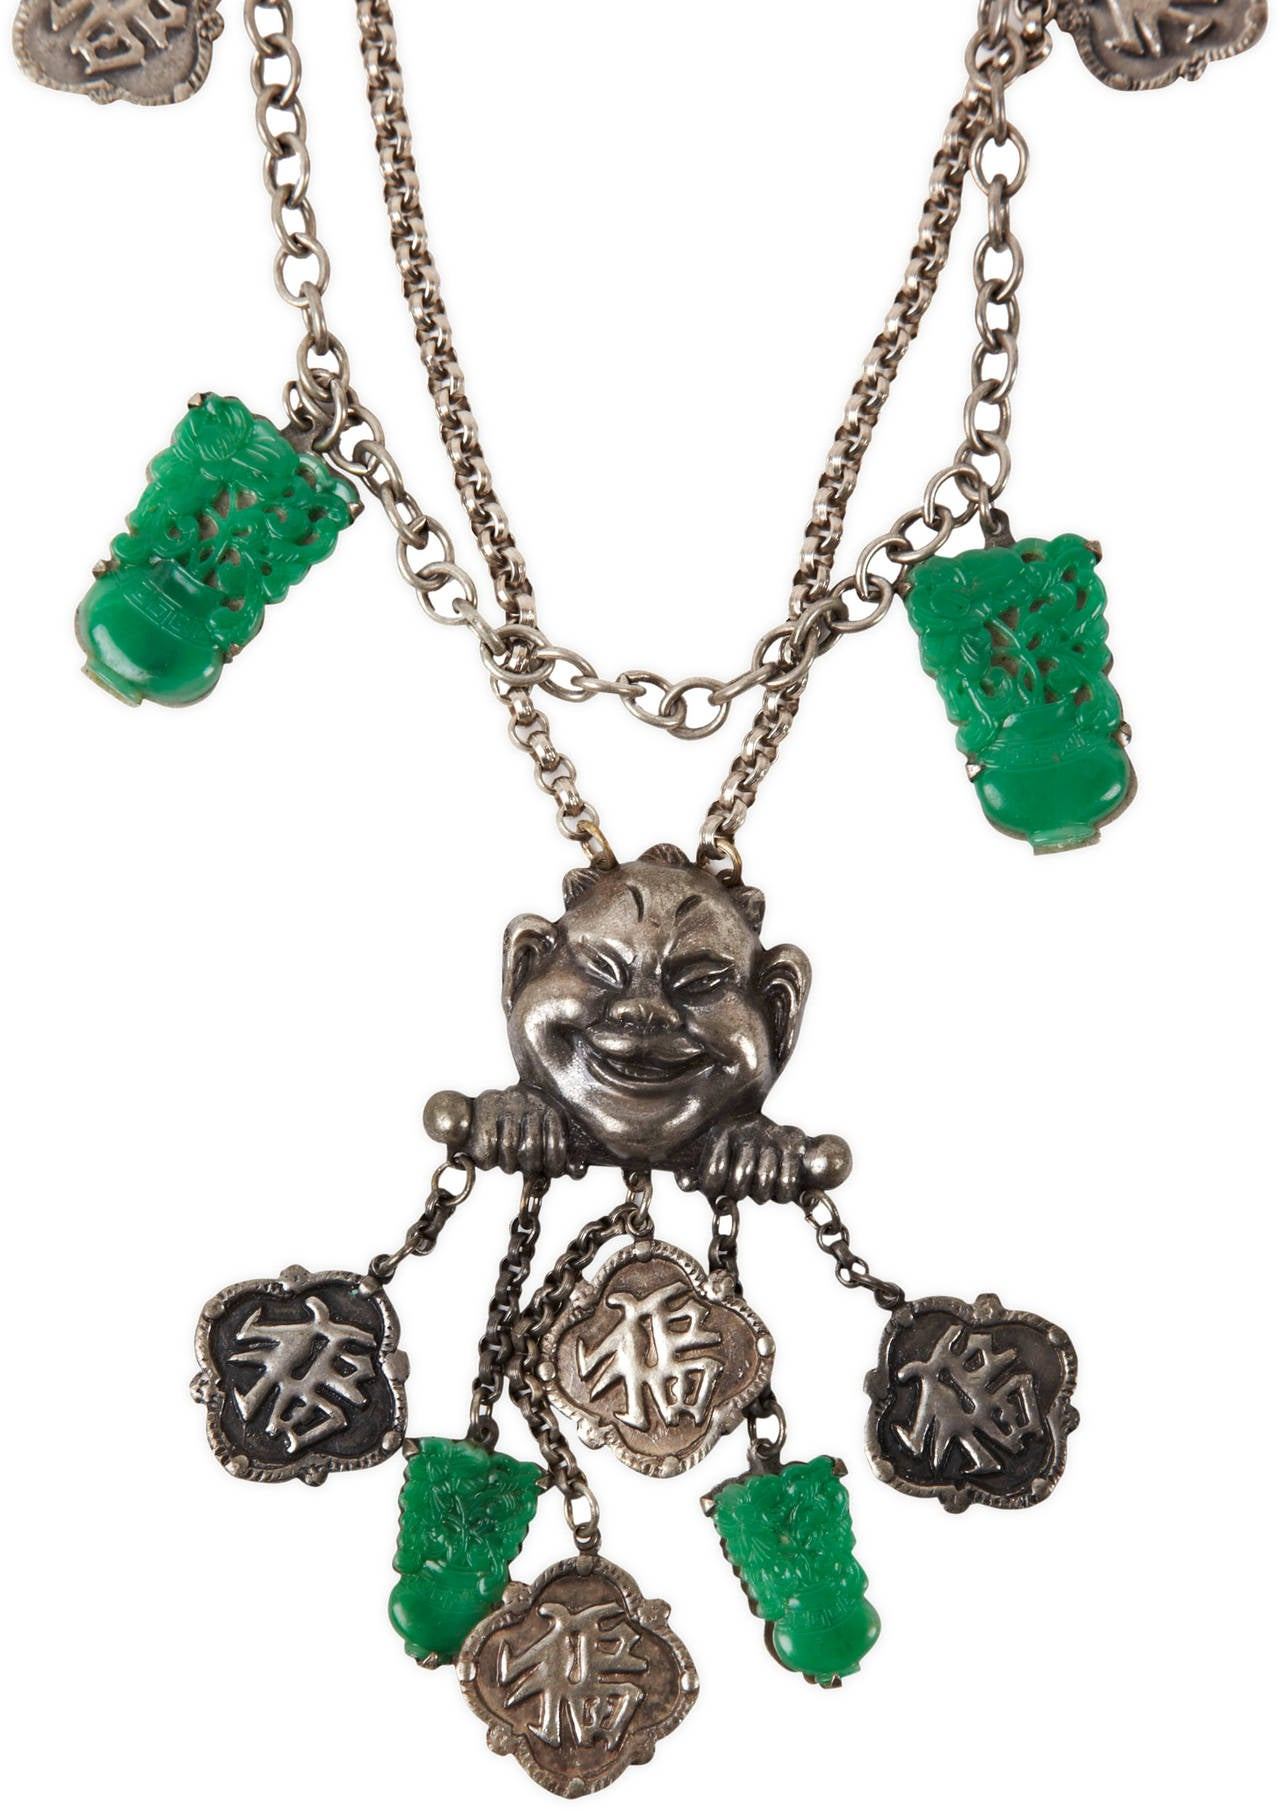 Amusing Asian Style Art Deco Necklace In Excellent Condition For Sale In Riverdale, NY